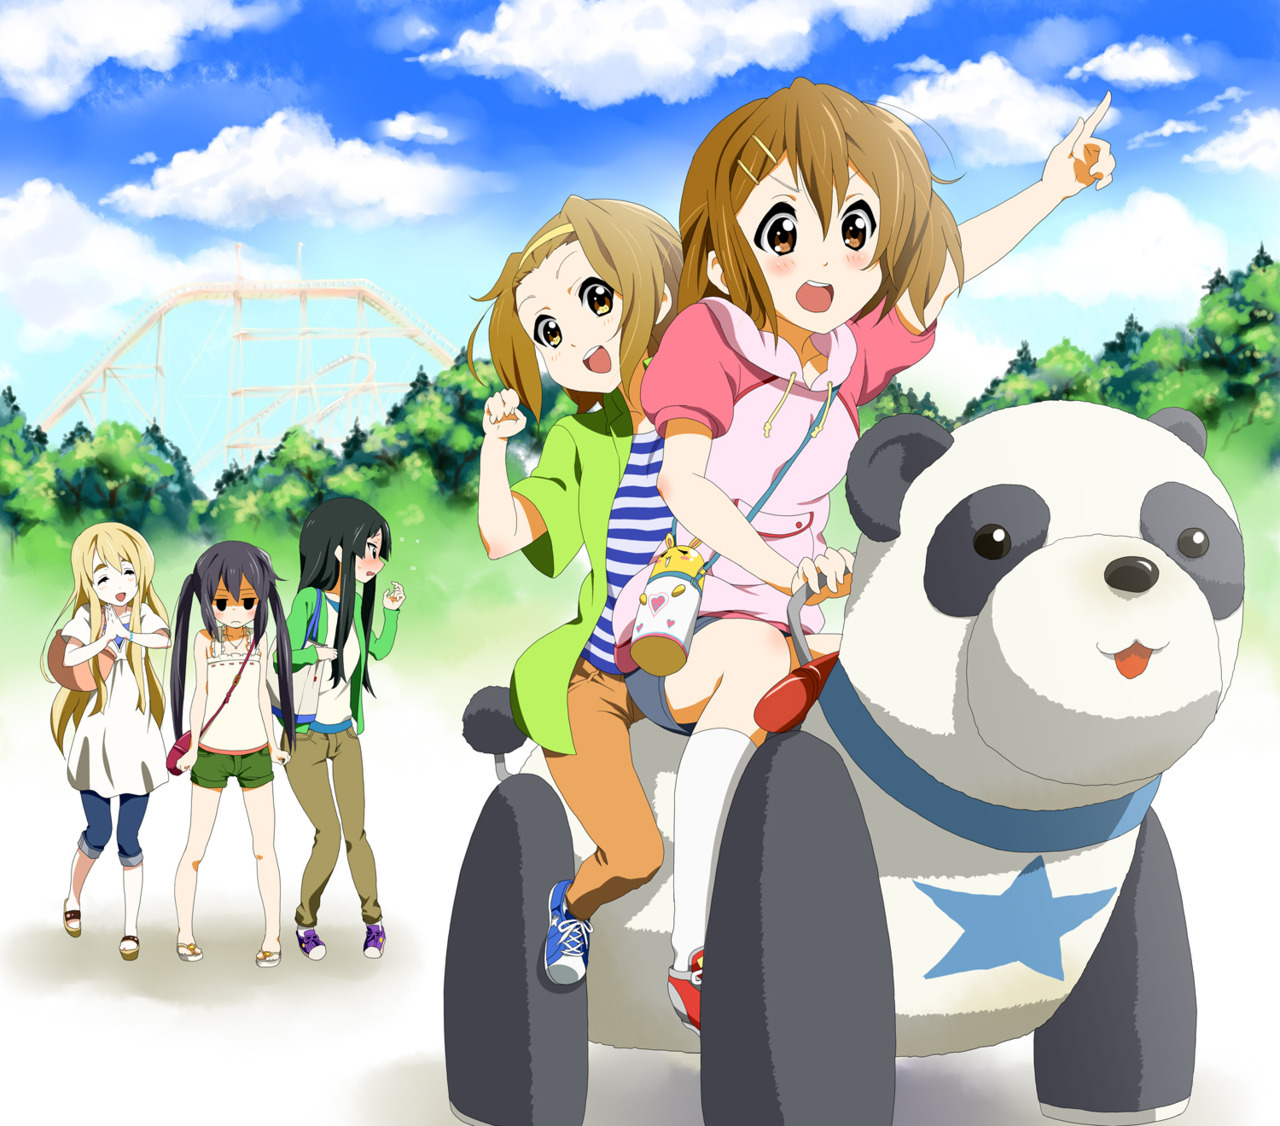 Cast of K-On! at an amusemark park